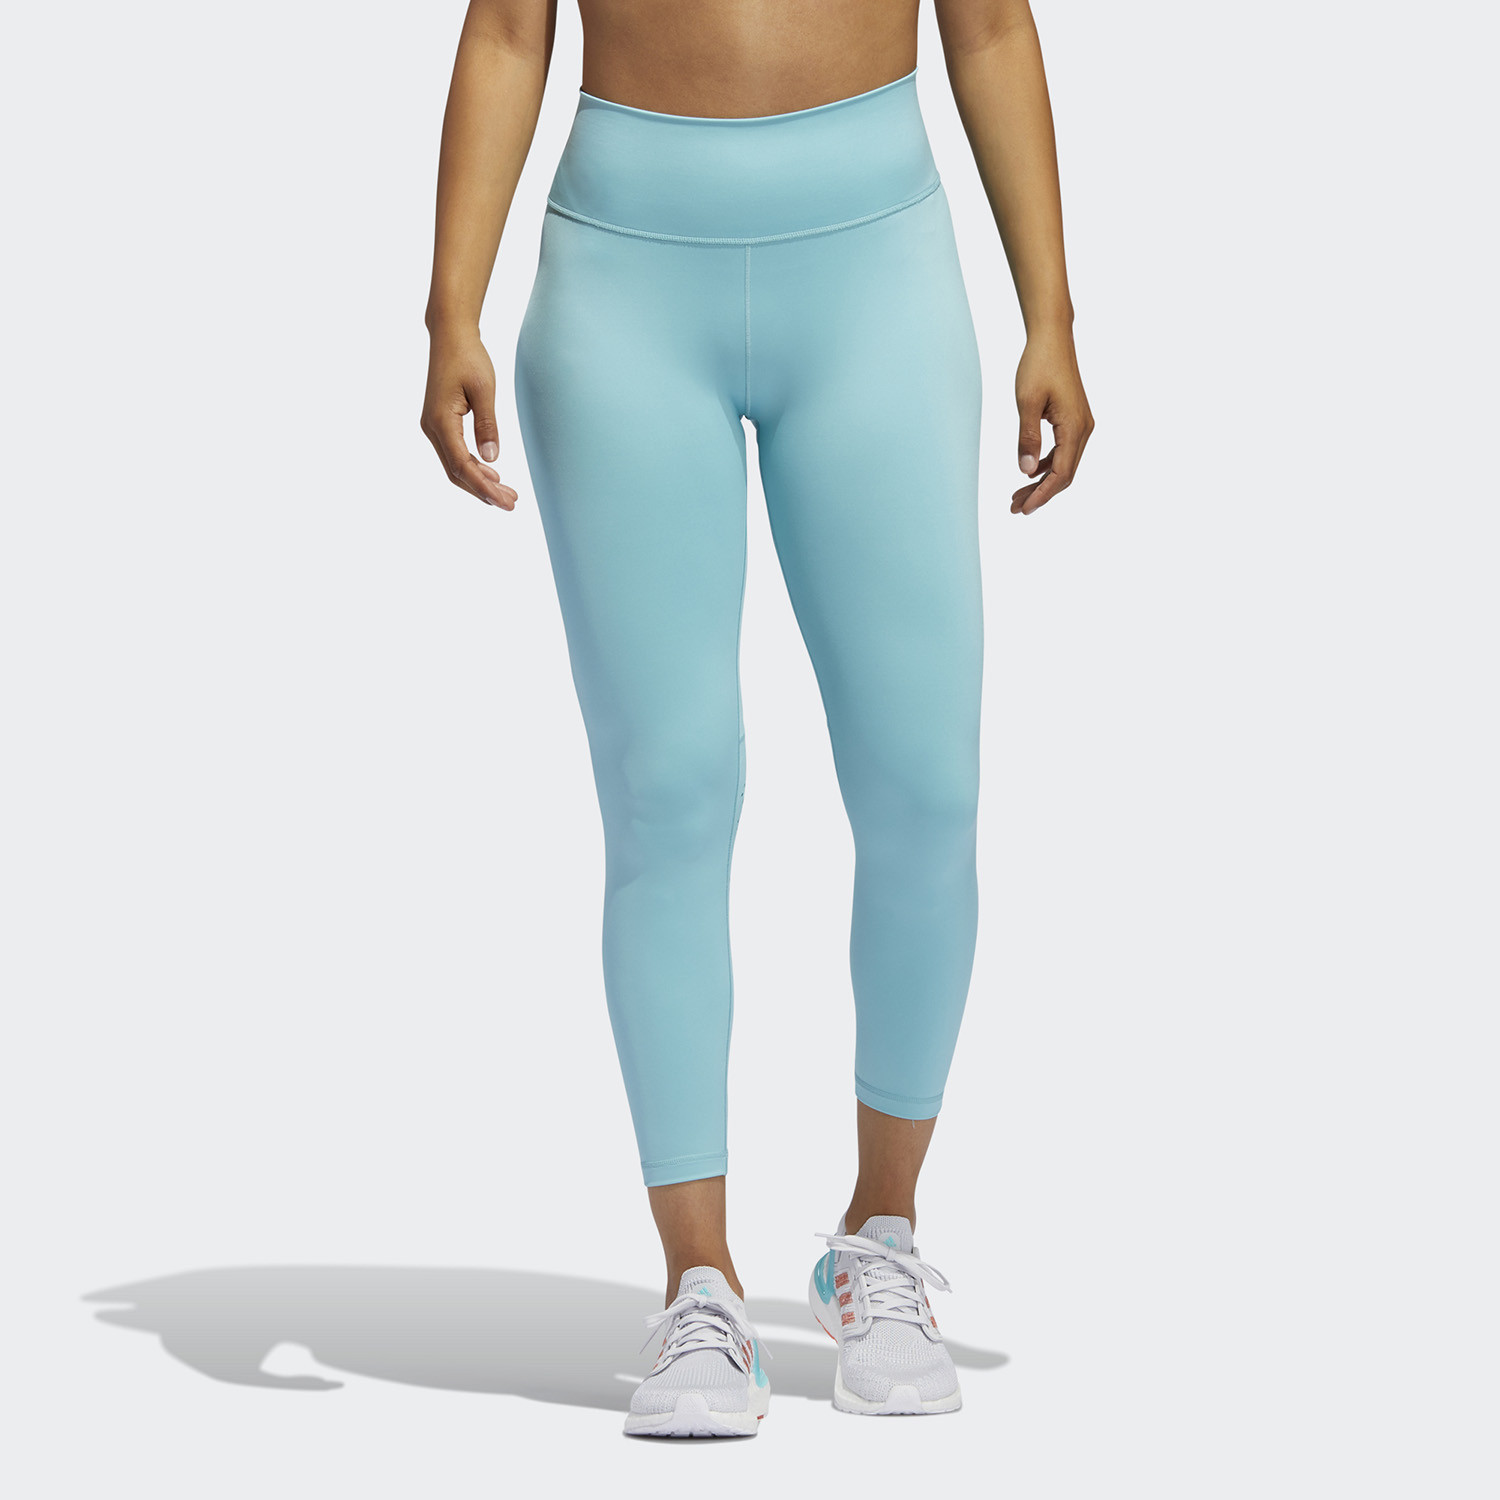 adidas Performance Believe This 2.0 Primeblue 7/8 Women's Tights (9000046366_37330)